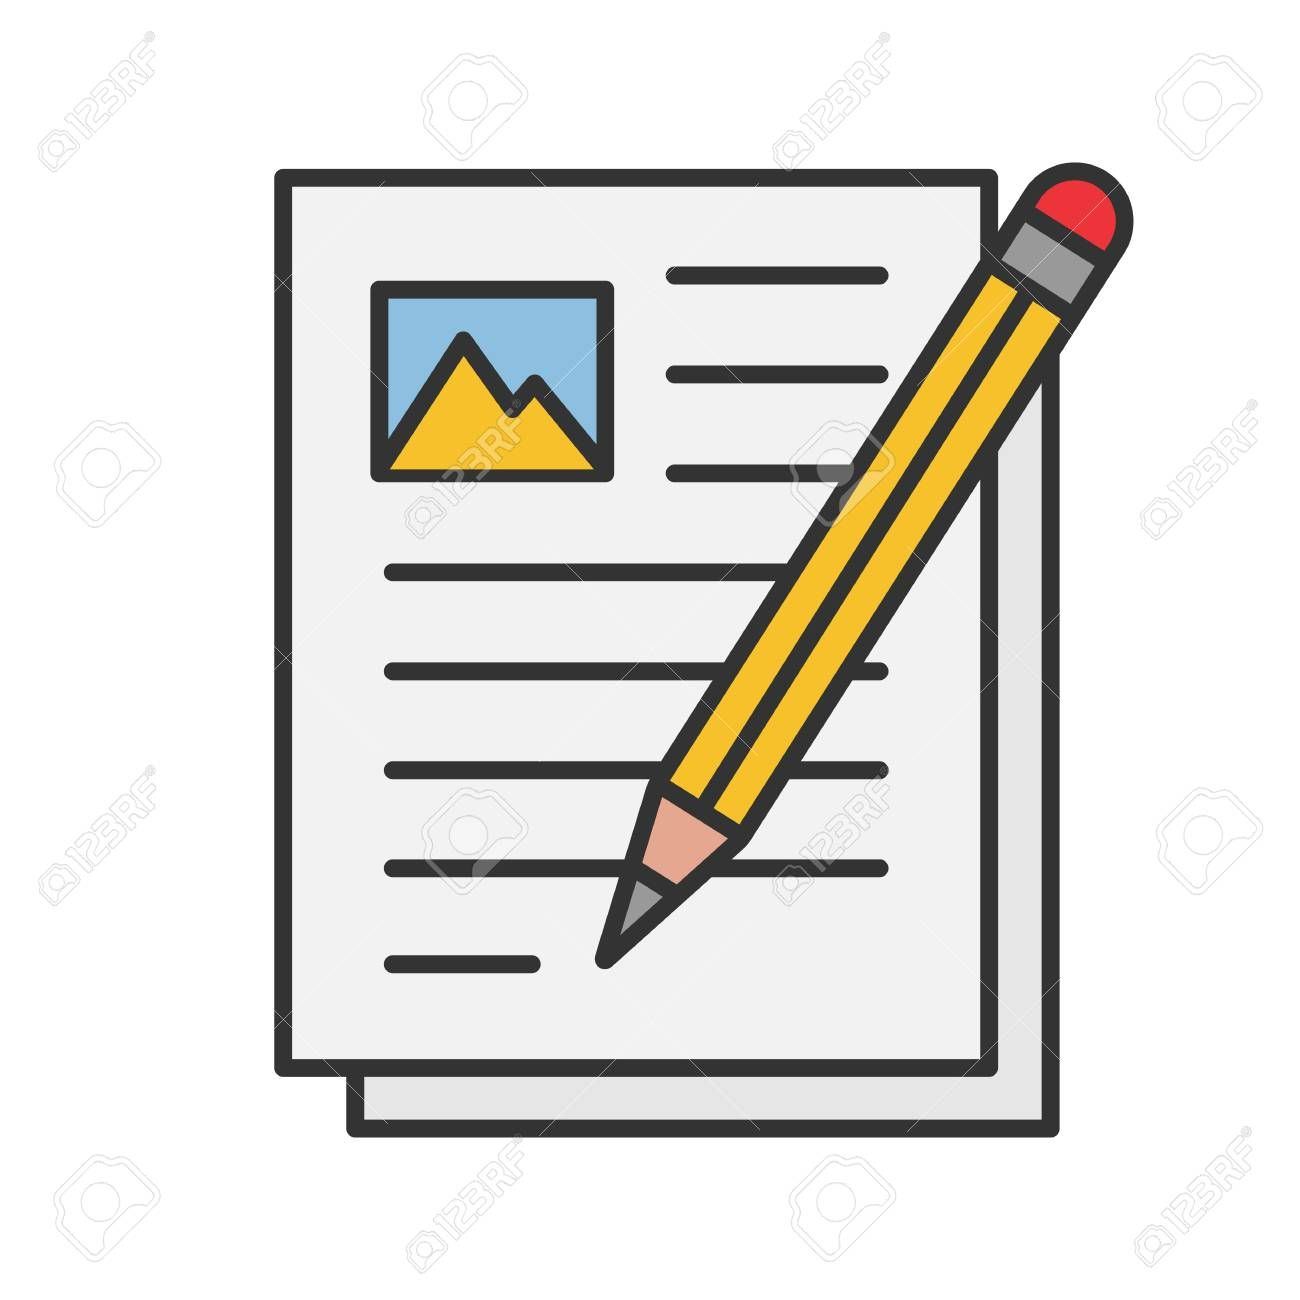 Custom essay writer for $8 per page